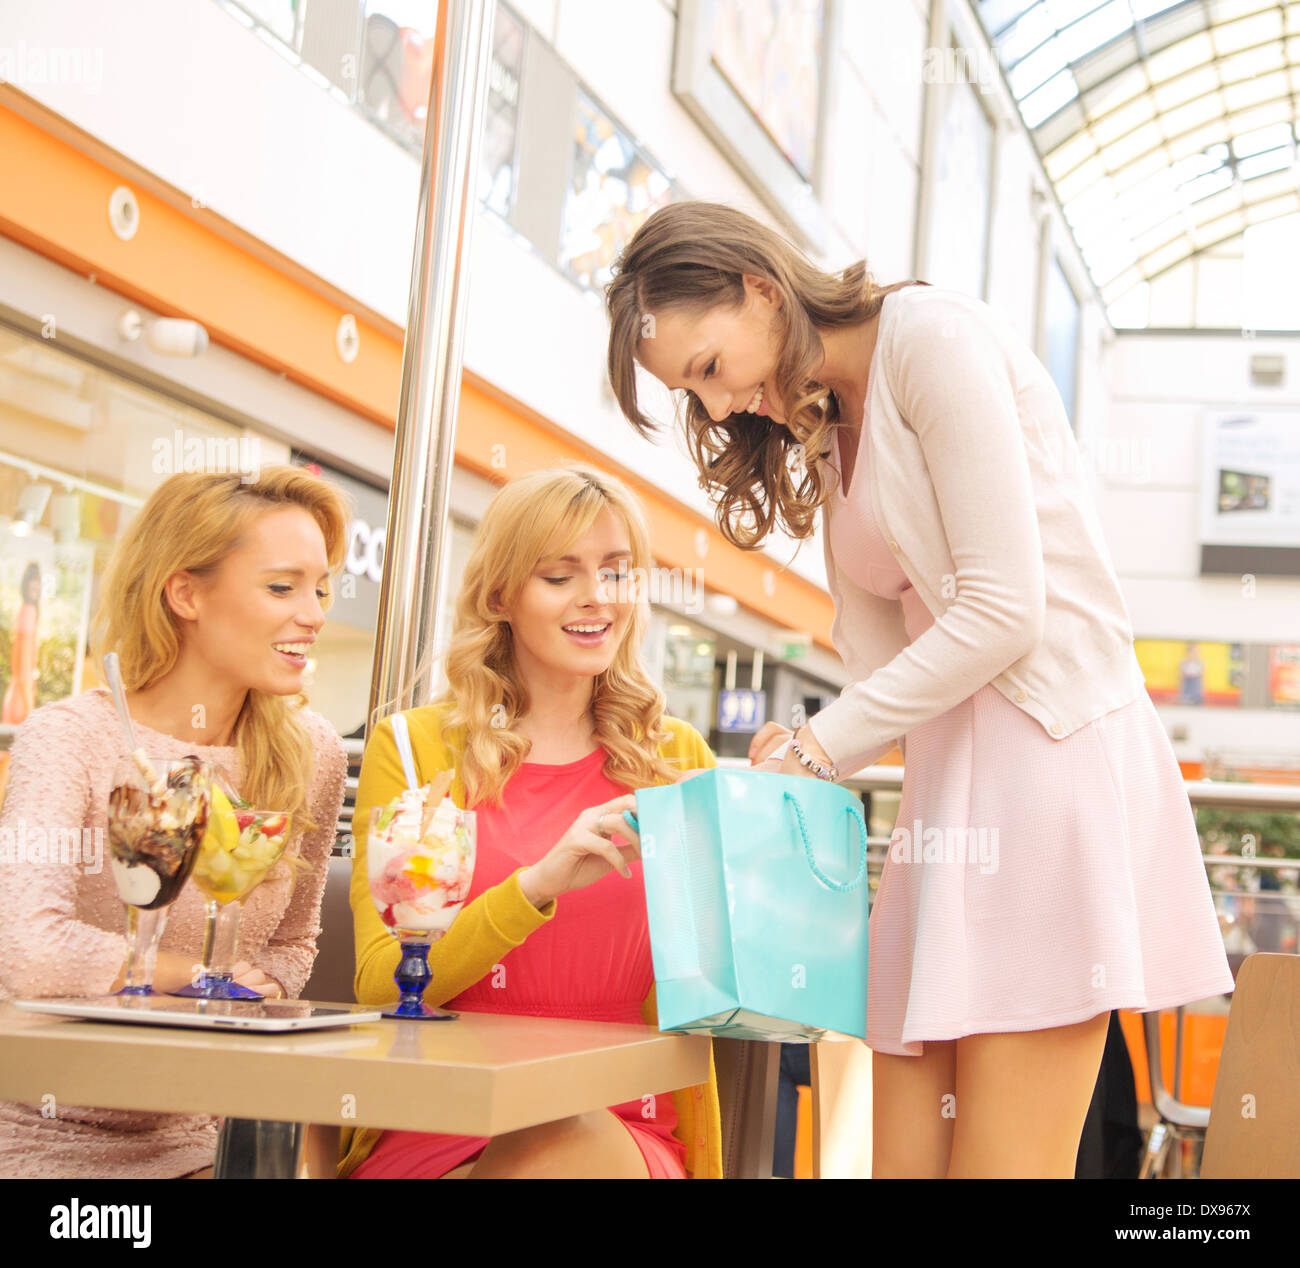 Attractive lady showing her girlfriends some stuff - Stock Image